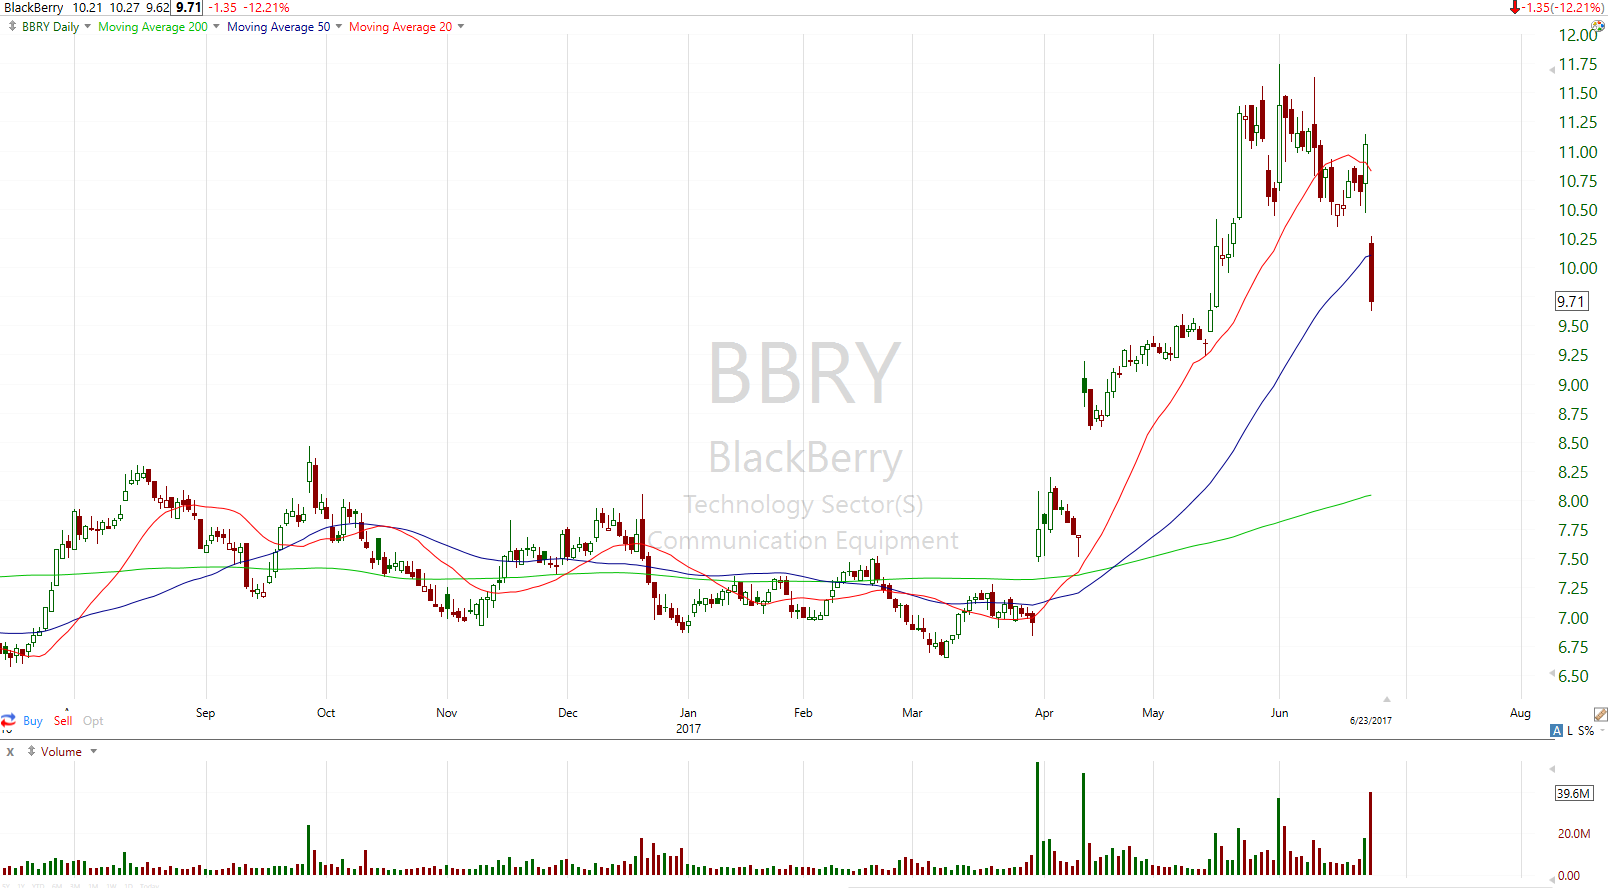 Featured Stock Overview: BlackBerry Limited (BBRY)